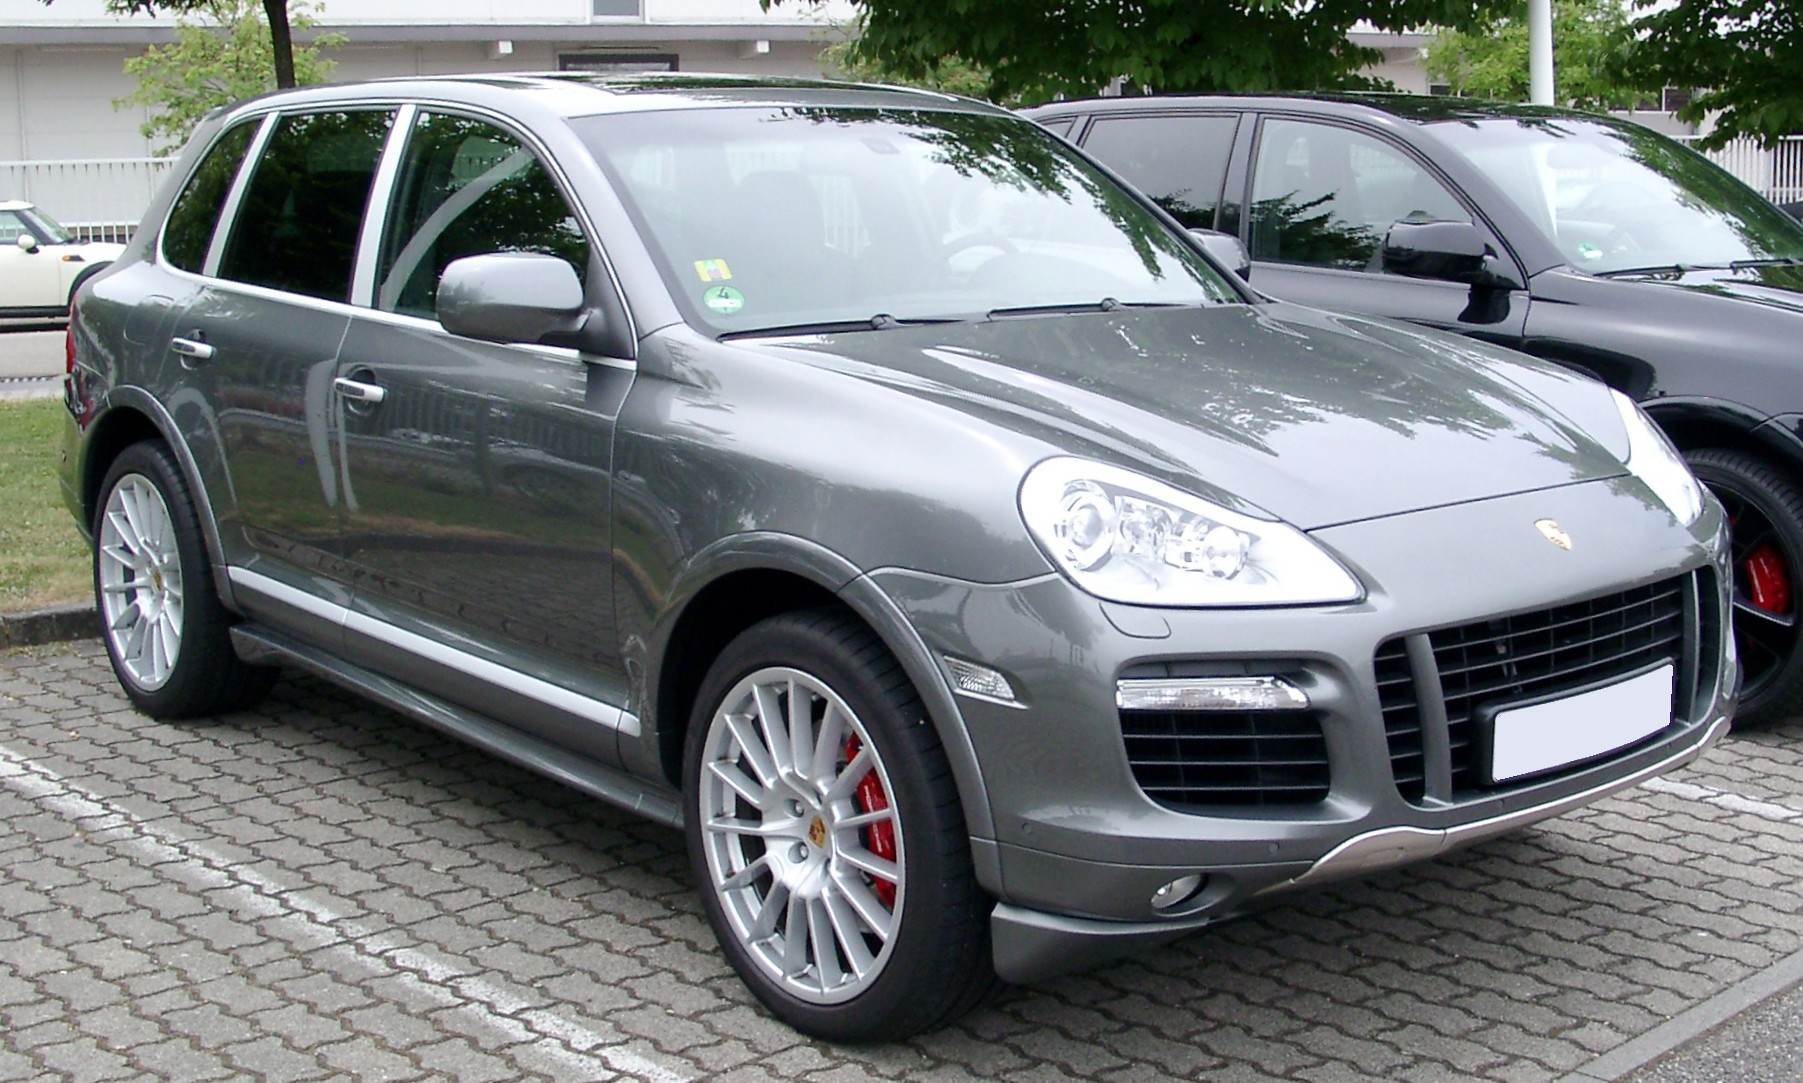 Porsche Cayenne Turbo S 2008 Review Amazing Pictures And